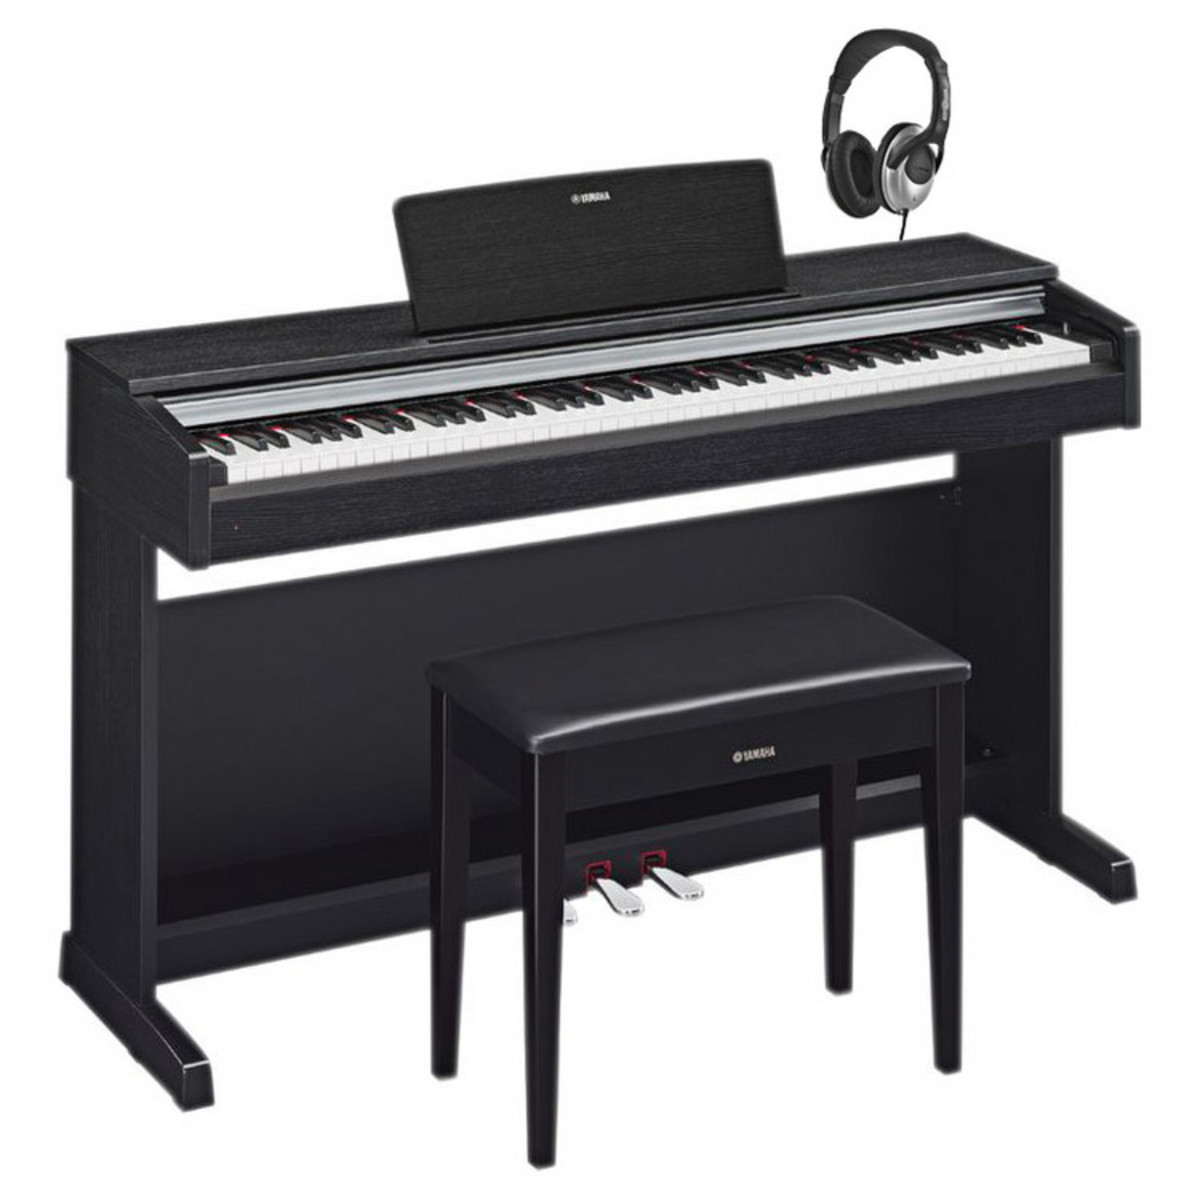 yamaha arius ydp161 digitale piano zwart notenhout. Black Bedroom Furniture Sets. Home Design Ideas